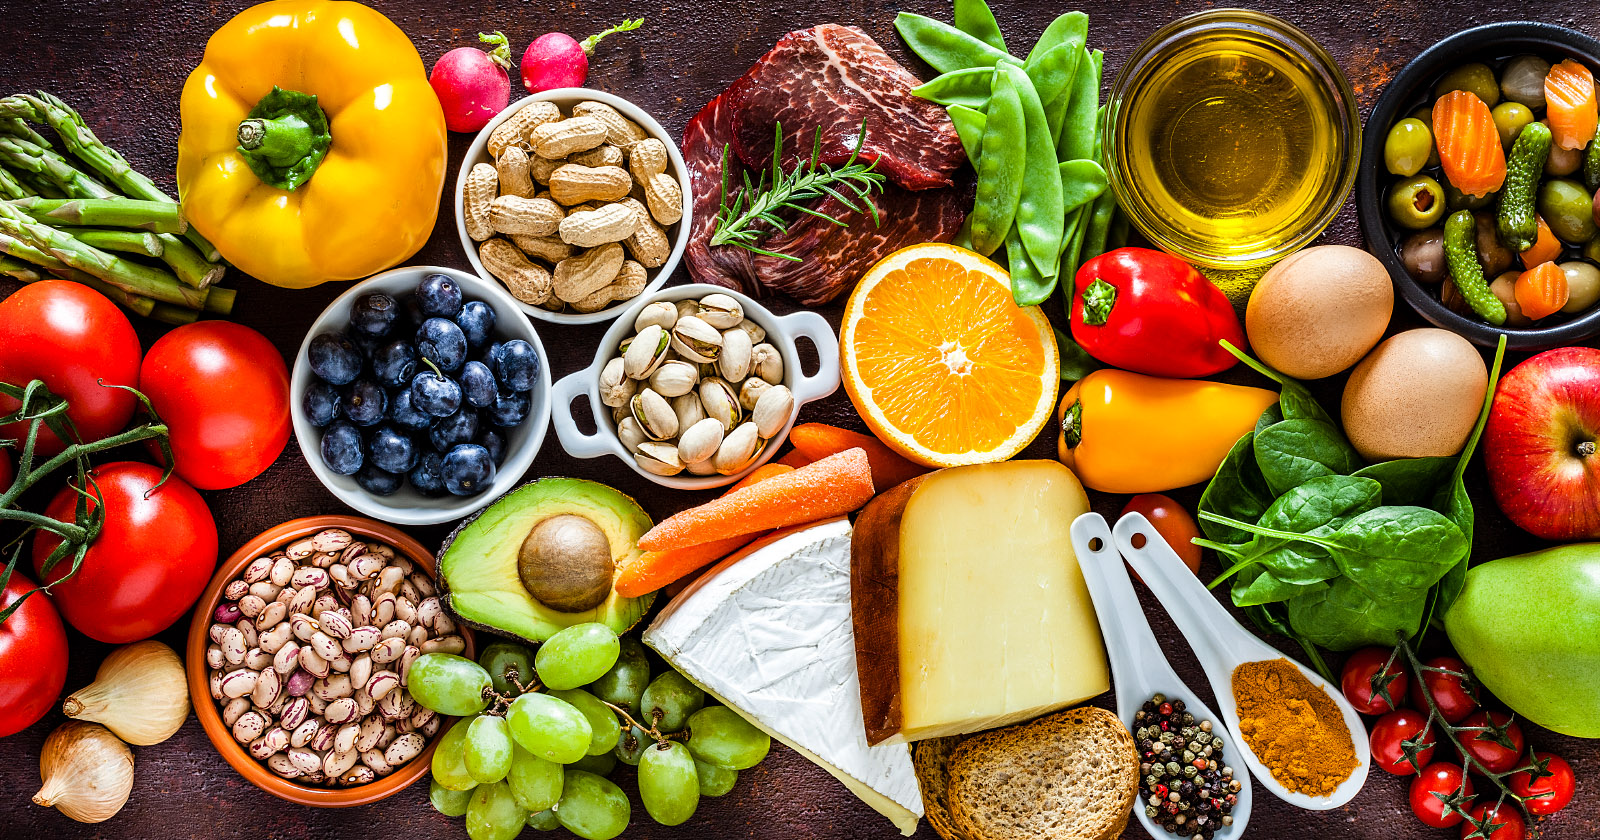 Mediterranean diet, a potential new way to reduce blood cholesterol and improve gut health